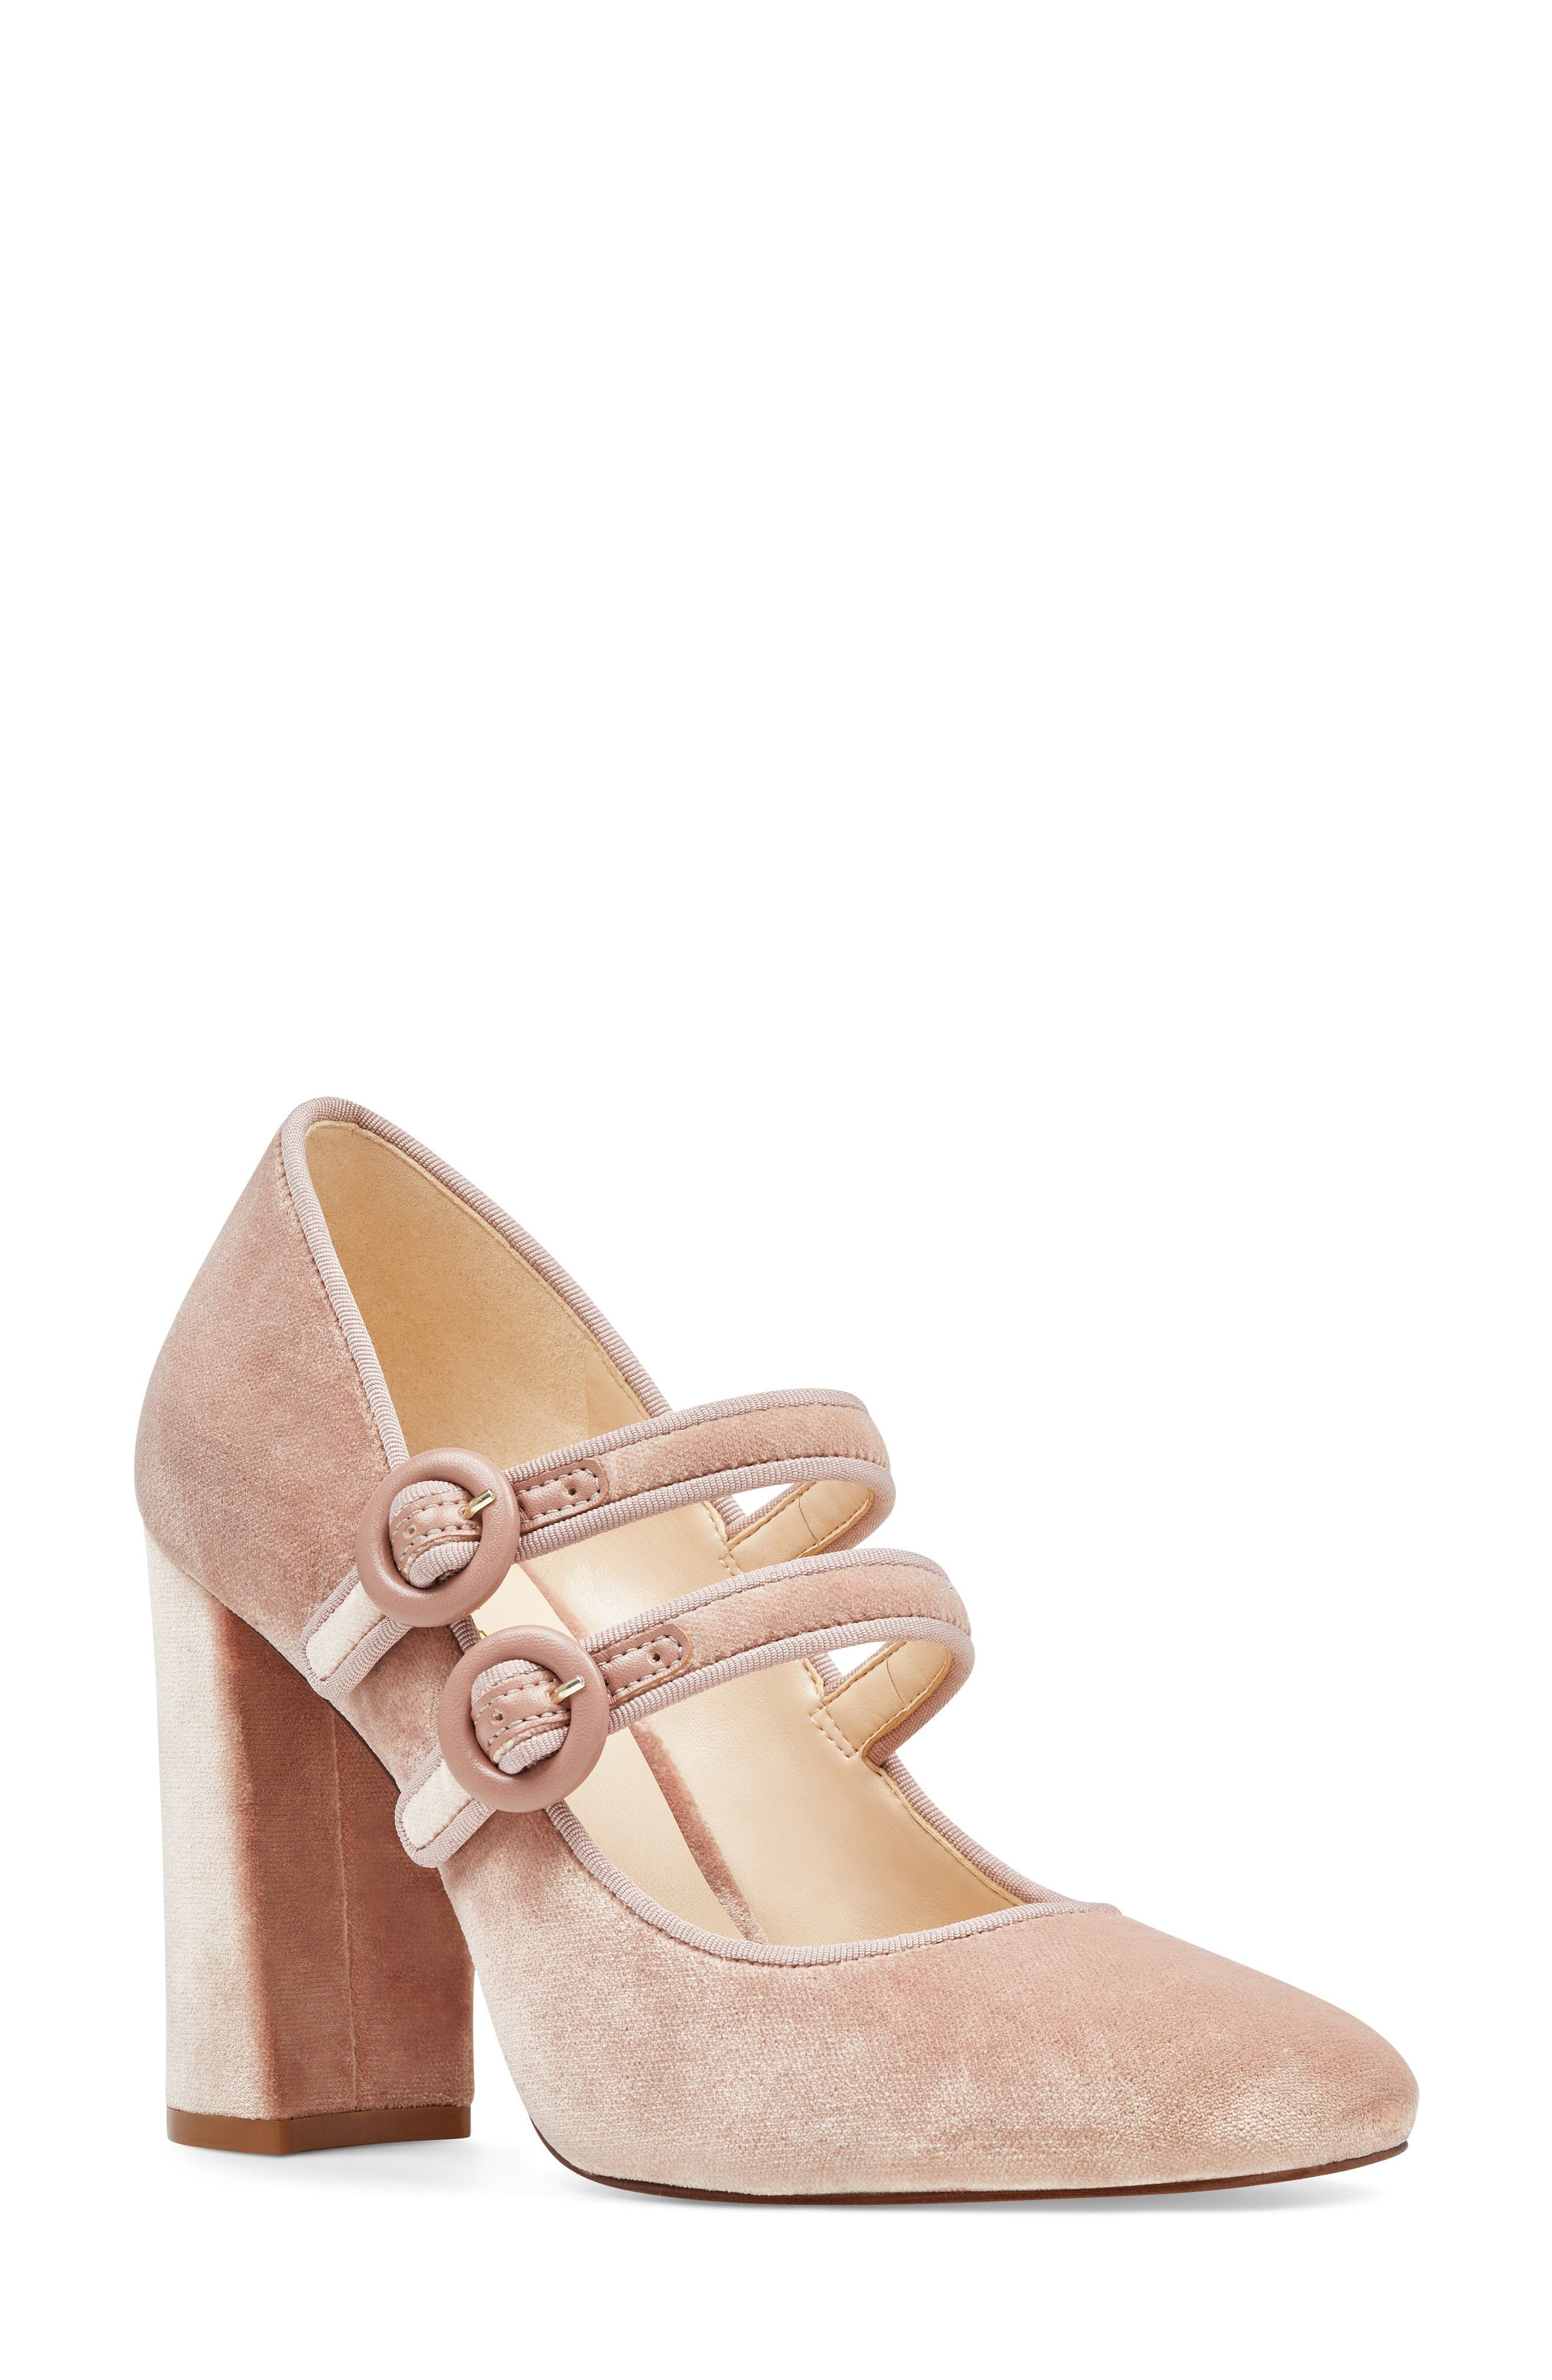 Dabney Double Strap Mary Jane Pump,                         Main,                         color, Natural Fabric